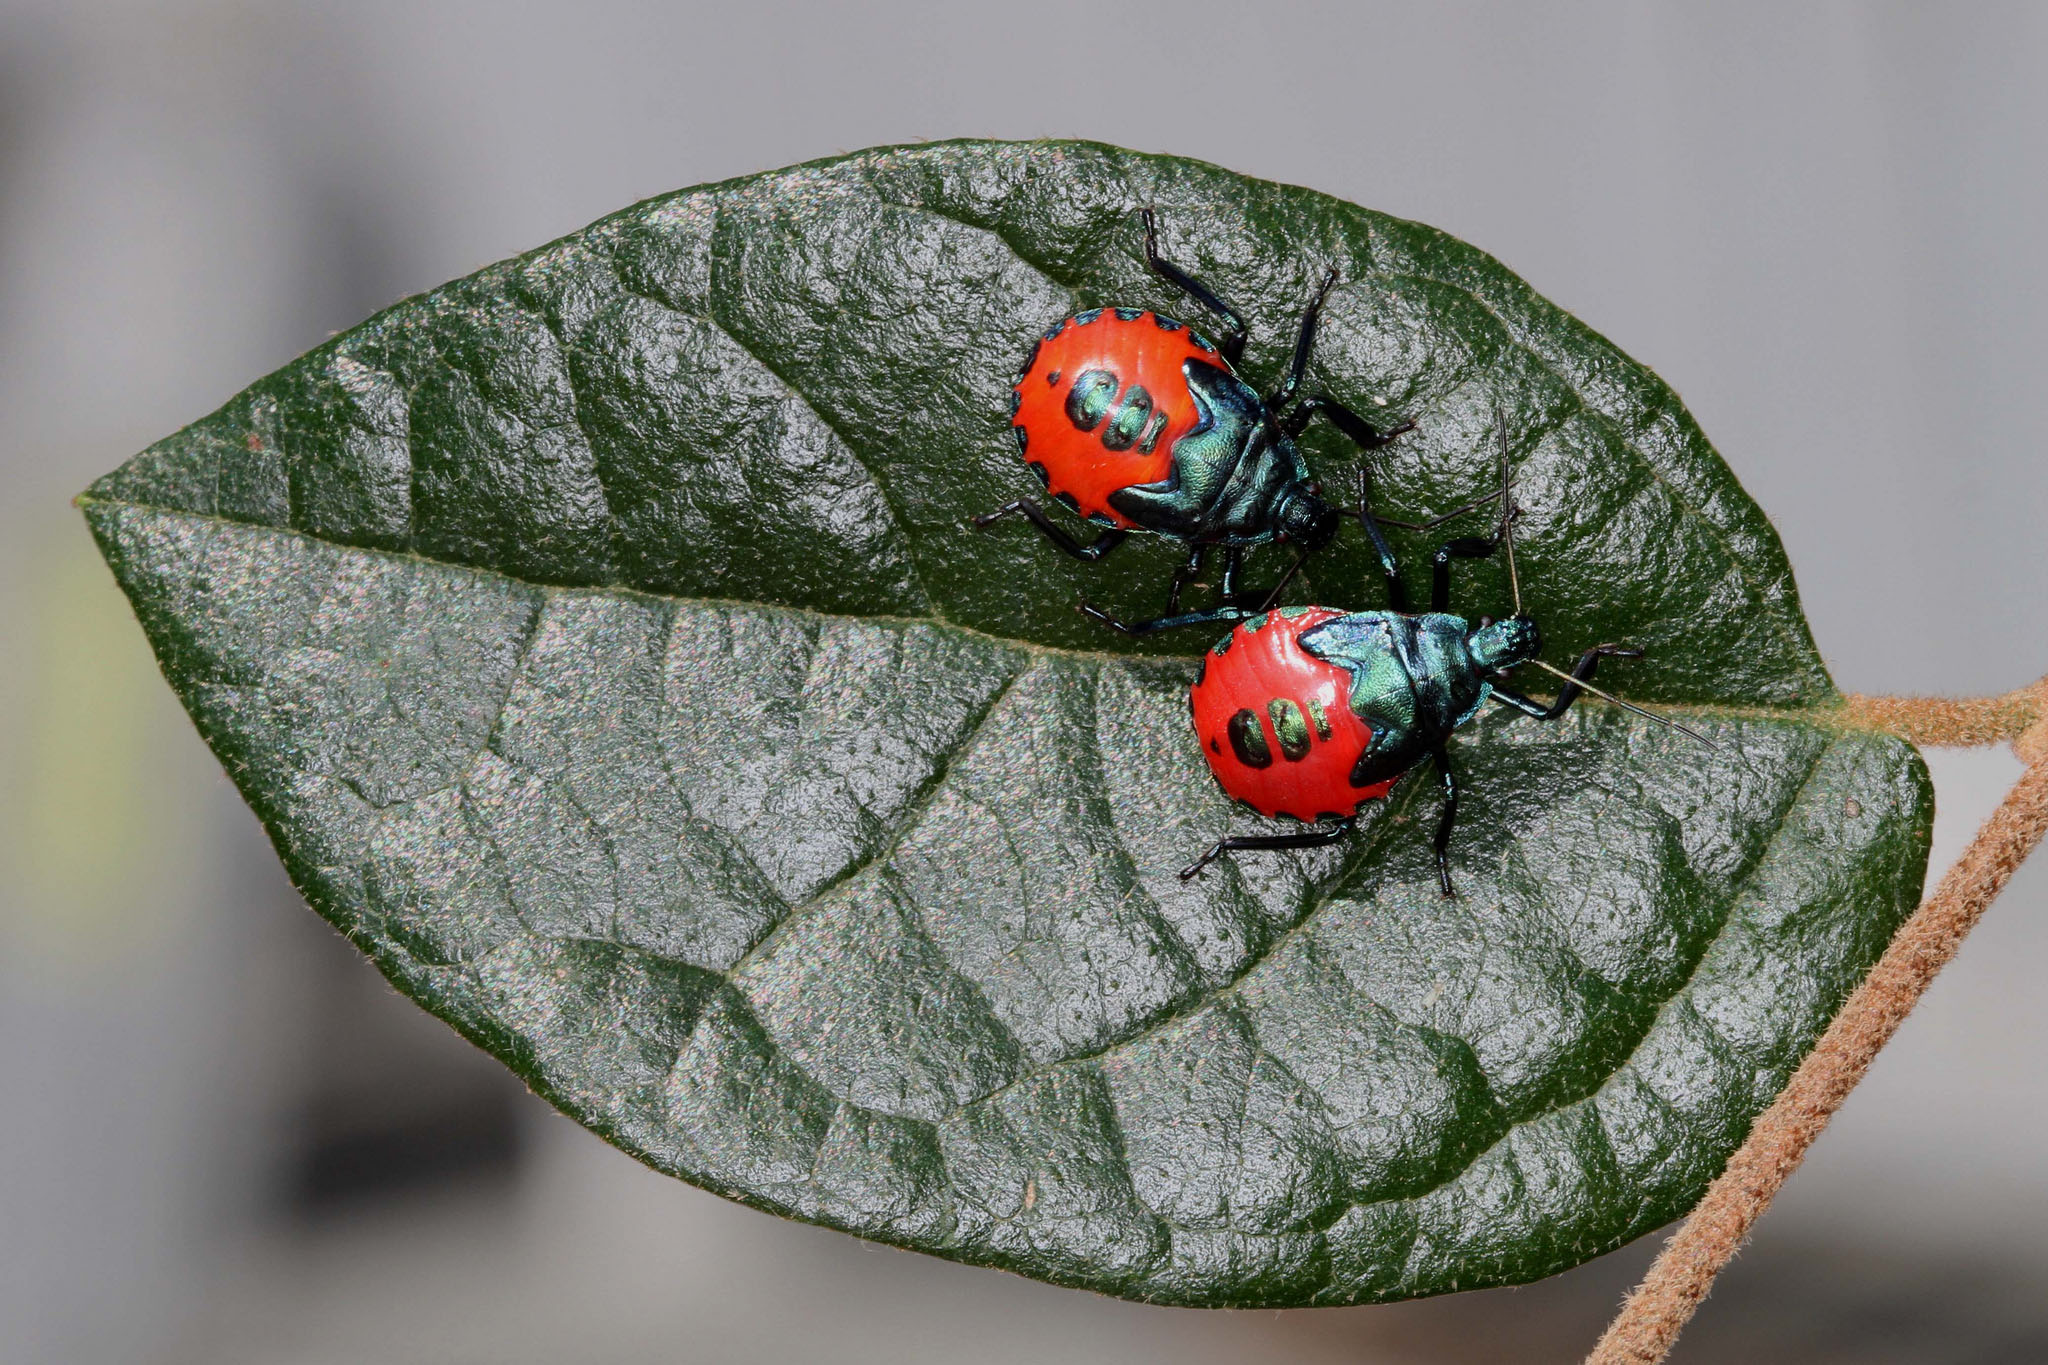 Two stink bug nymphs. Stink bugs terrible smell are a way for them to discourage predators from eating them.